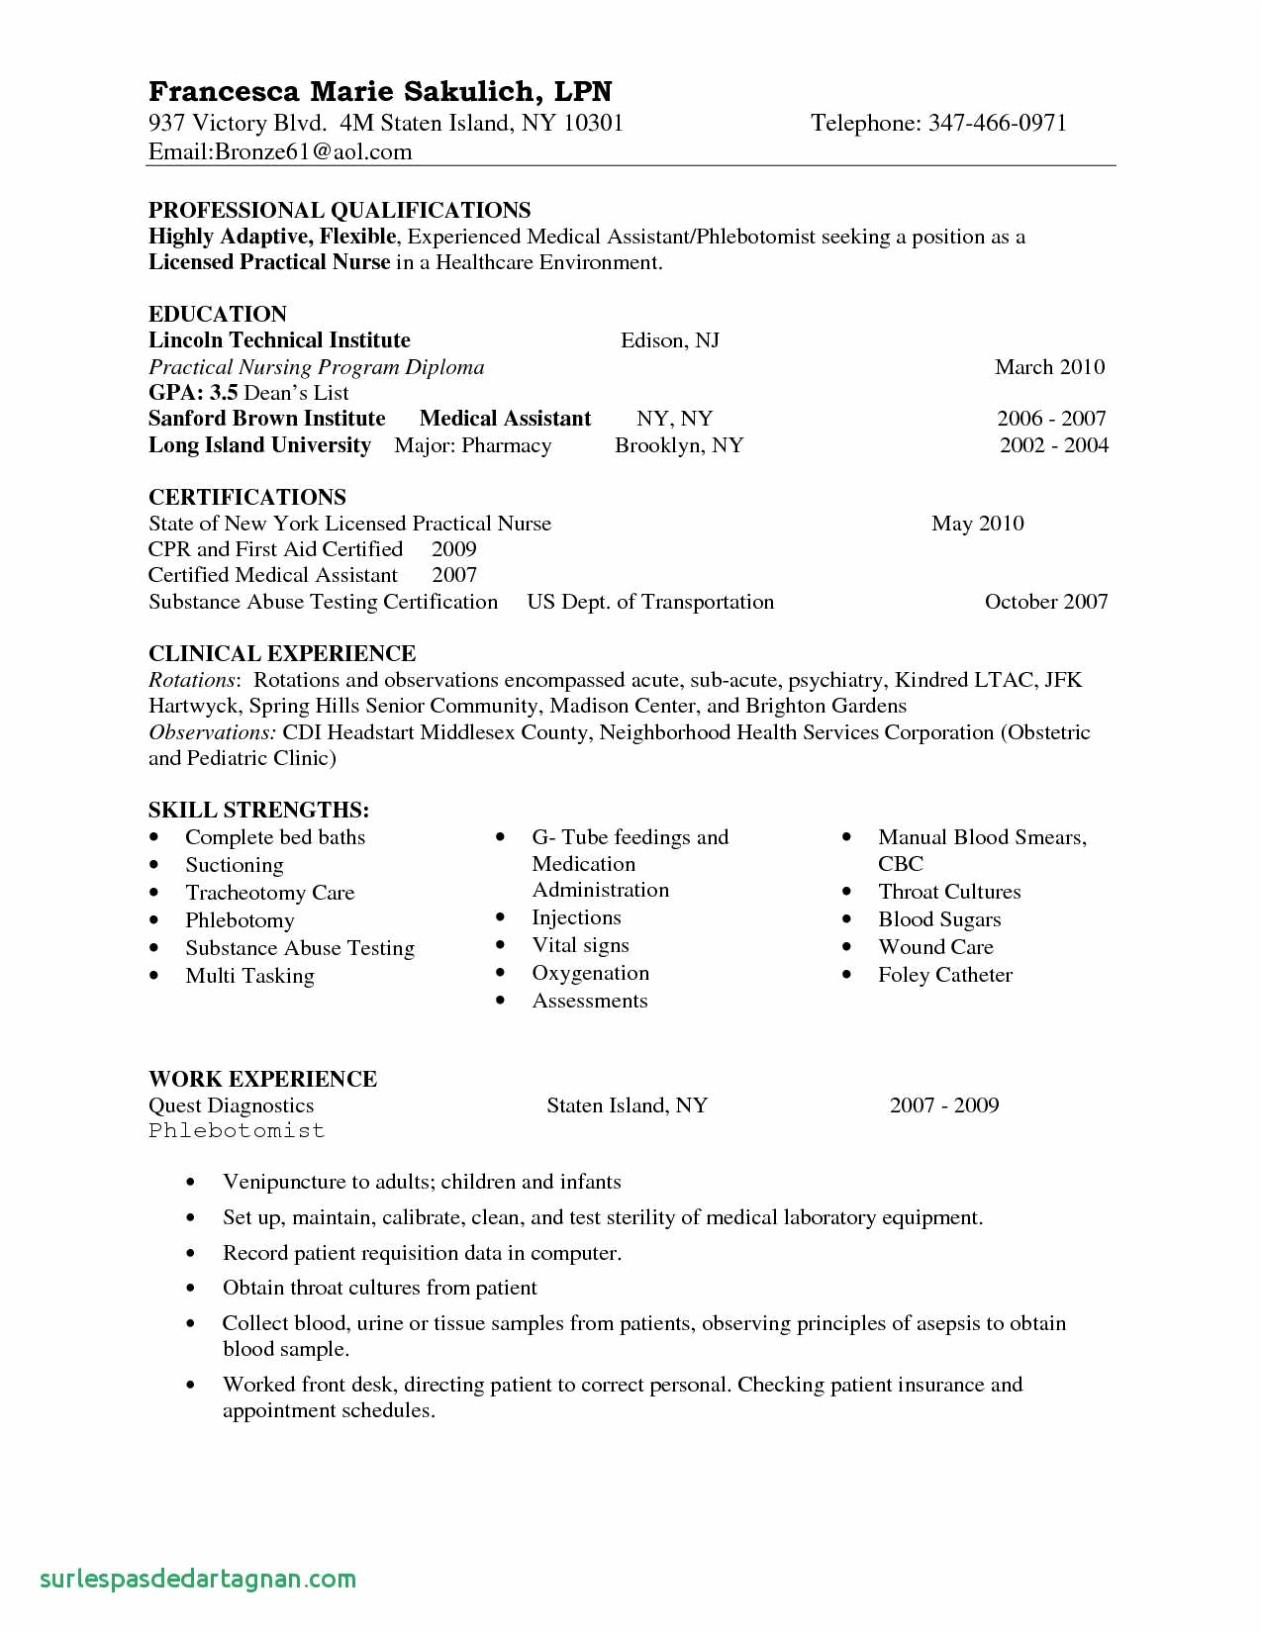 New Graduate Nurse Resume Template - Awesome New Grad Nursing Resume Template